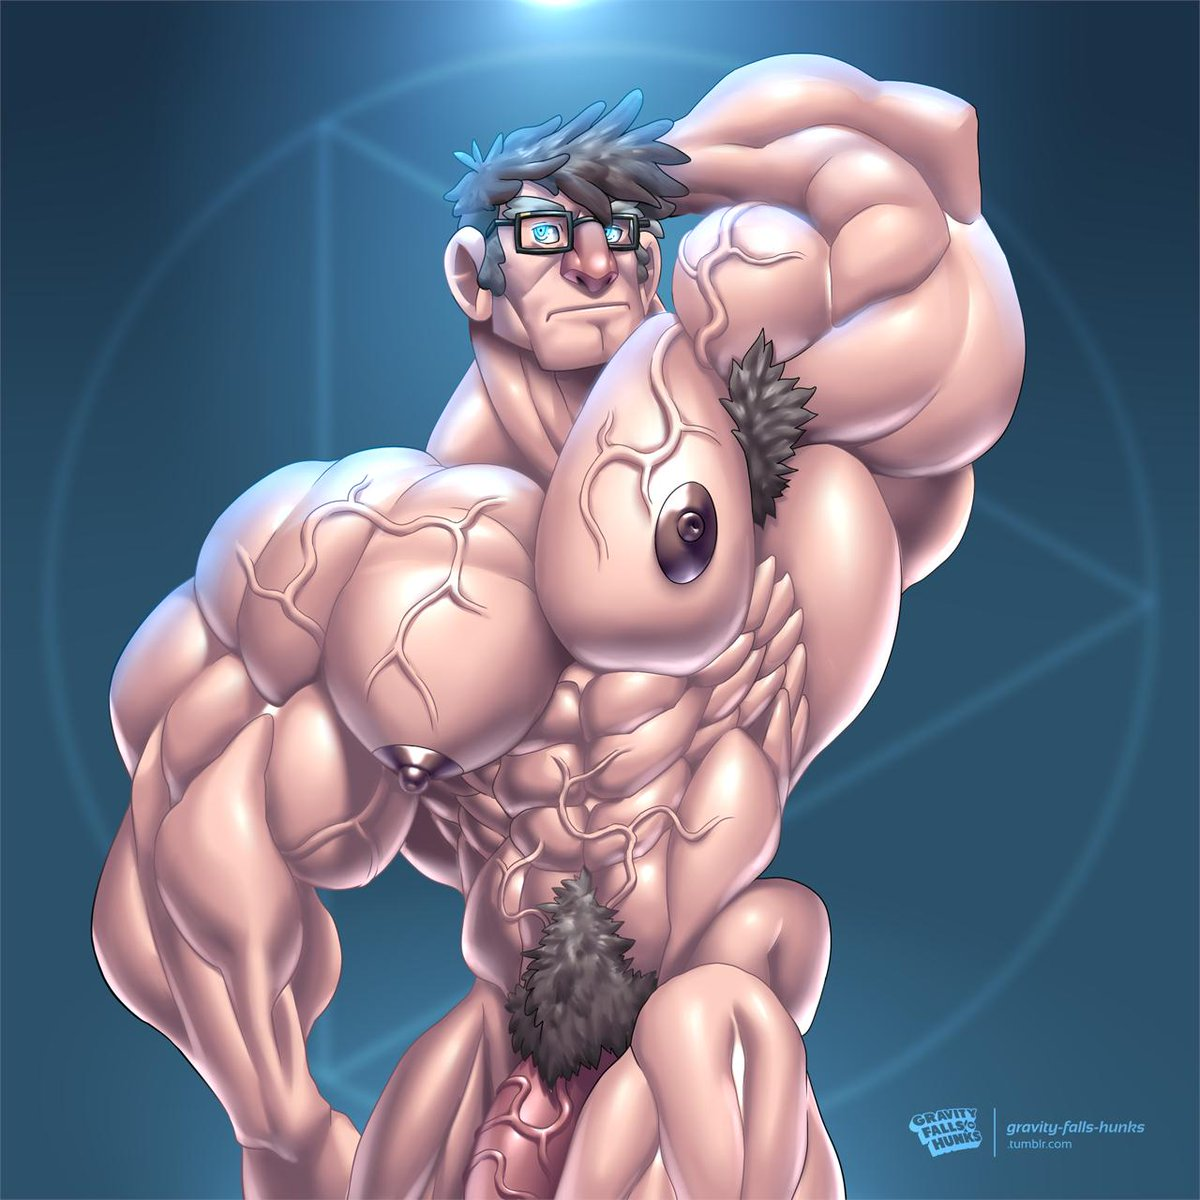 Erotic male muscle growth